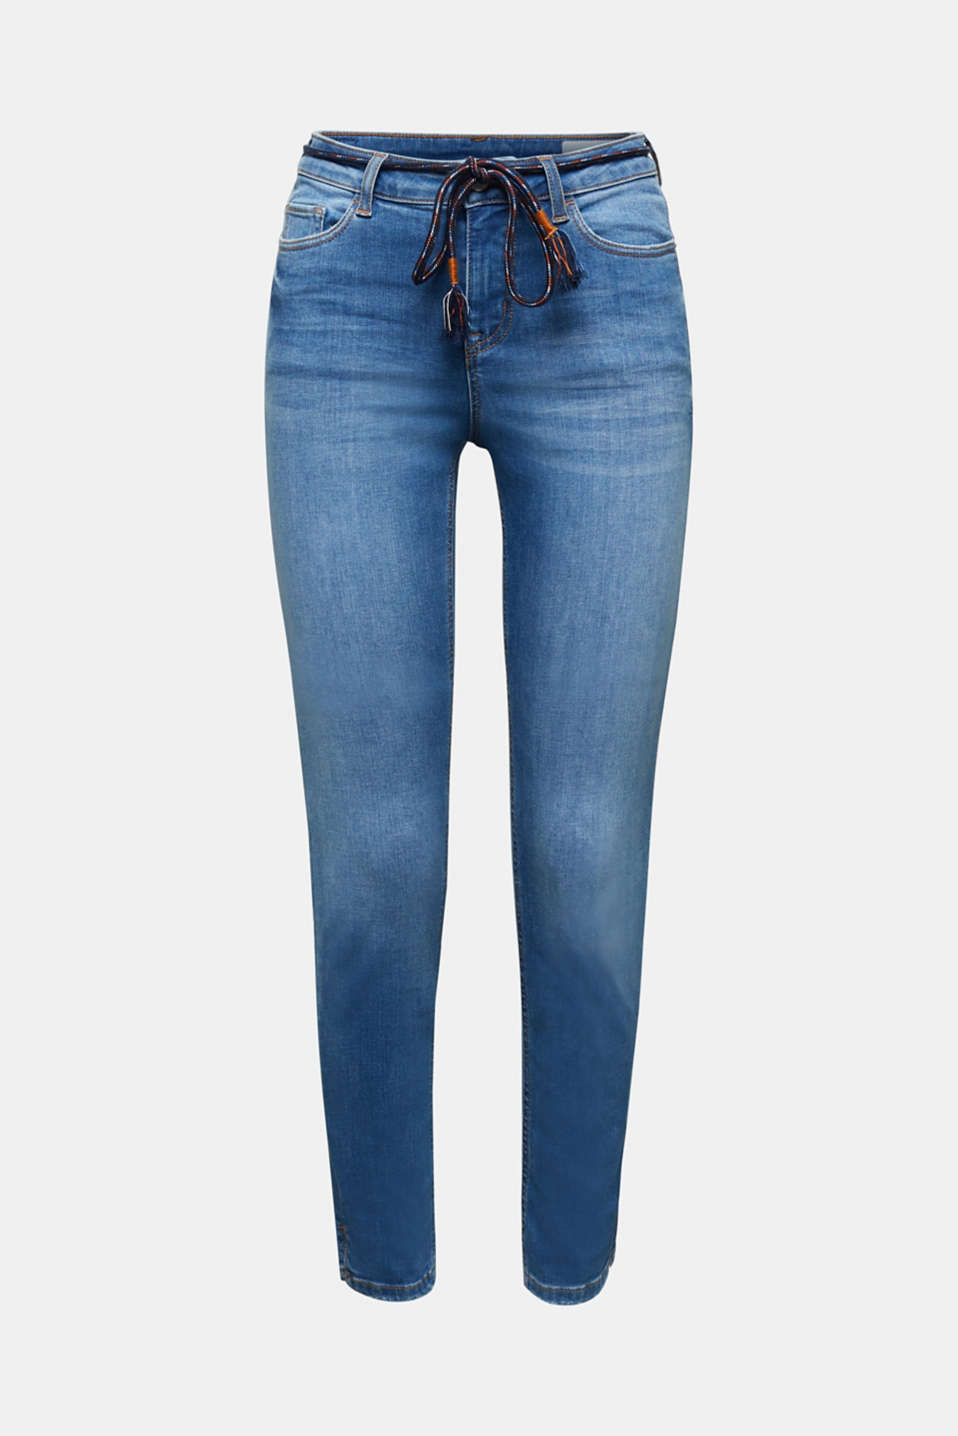 Ankle-length jeans with a tie-around belt, BLUE MEDIUM WASH, detail image number 7